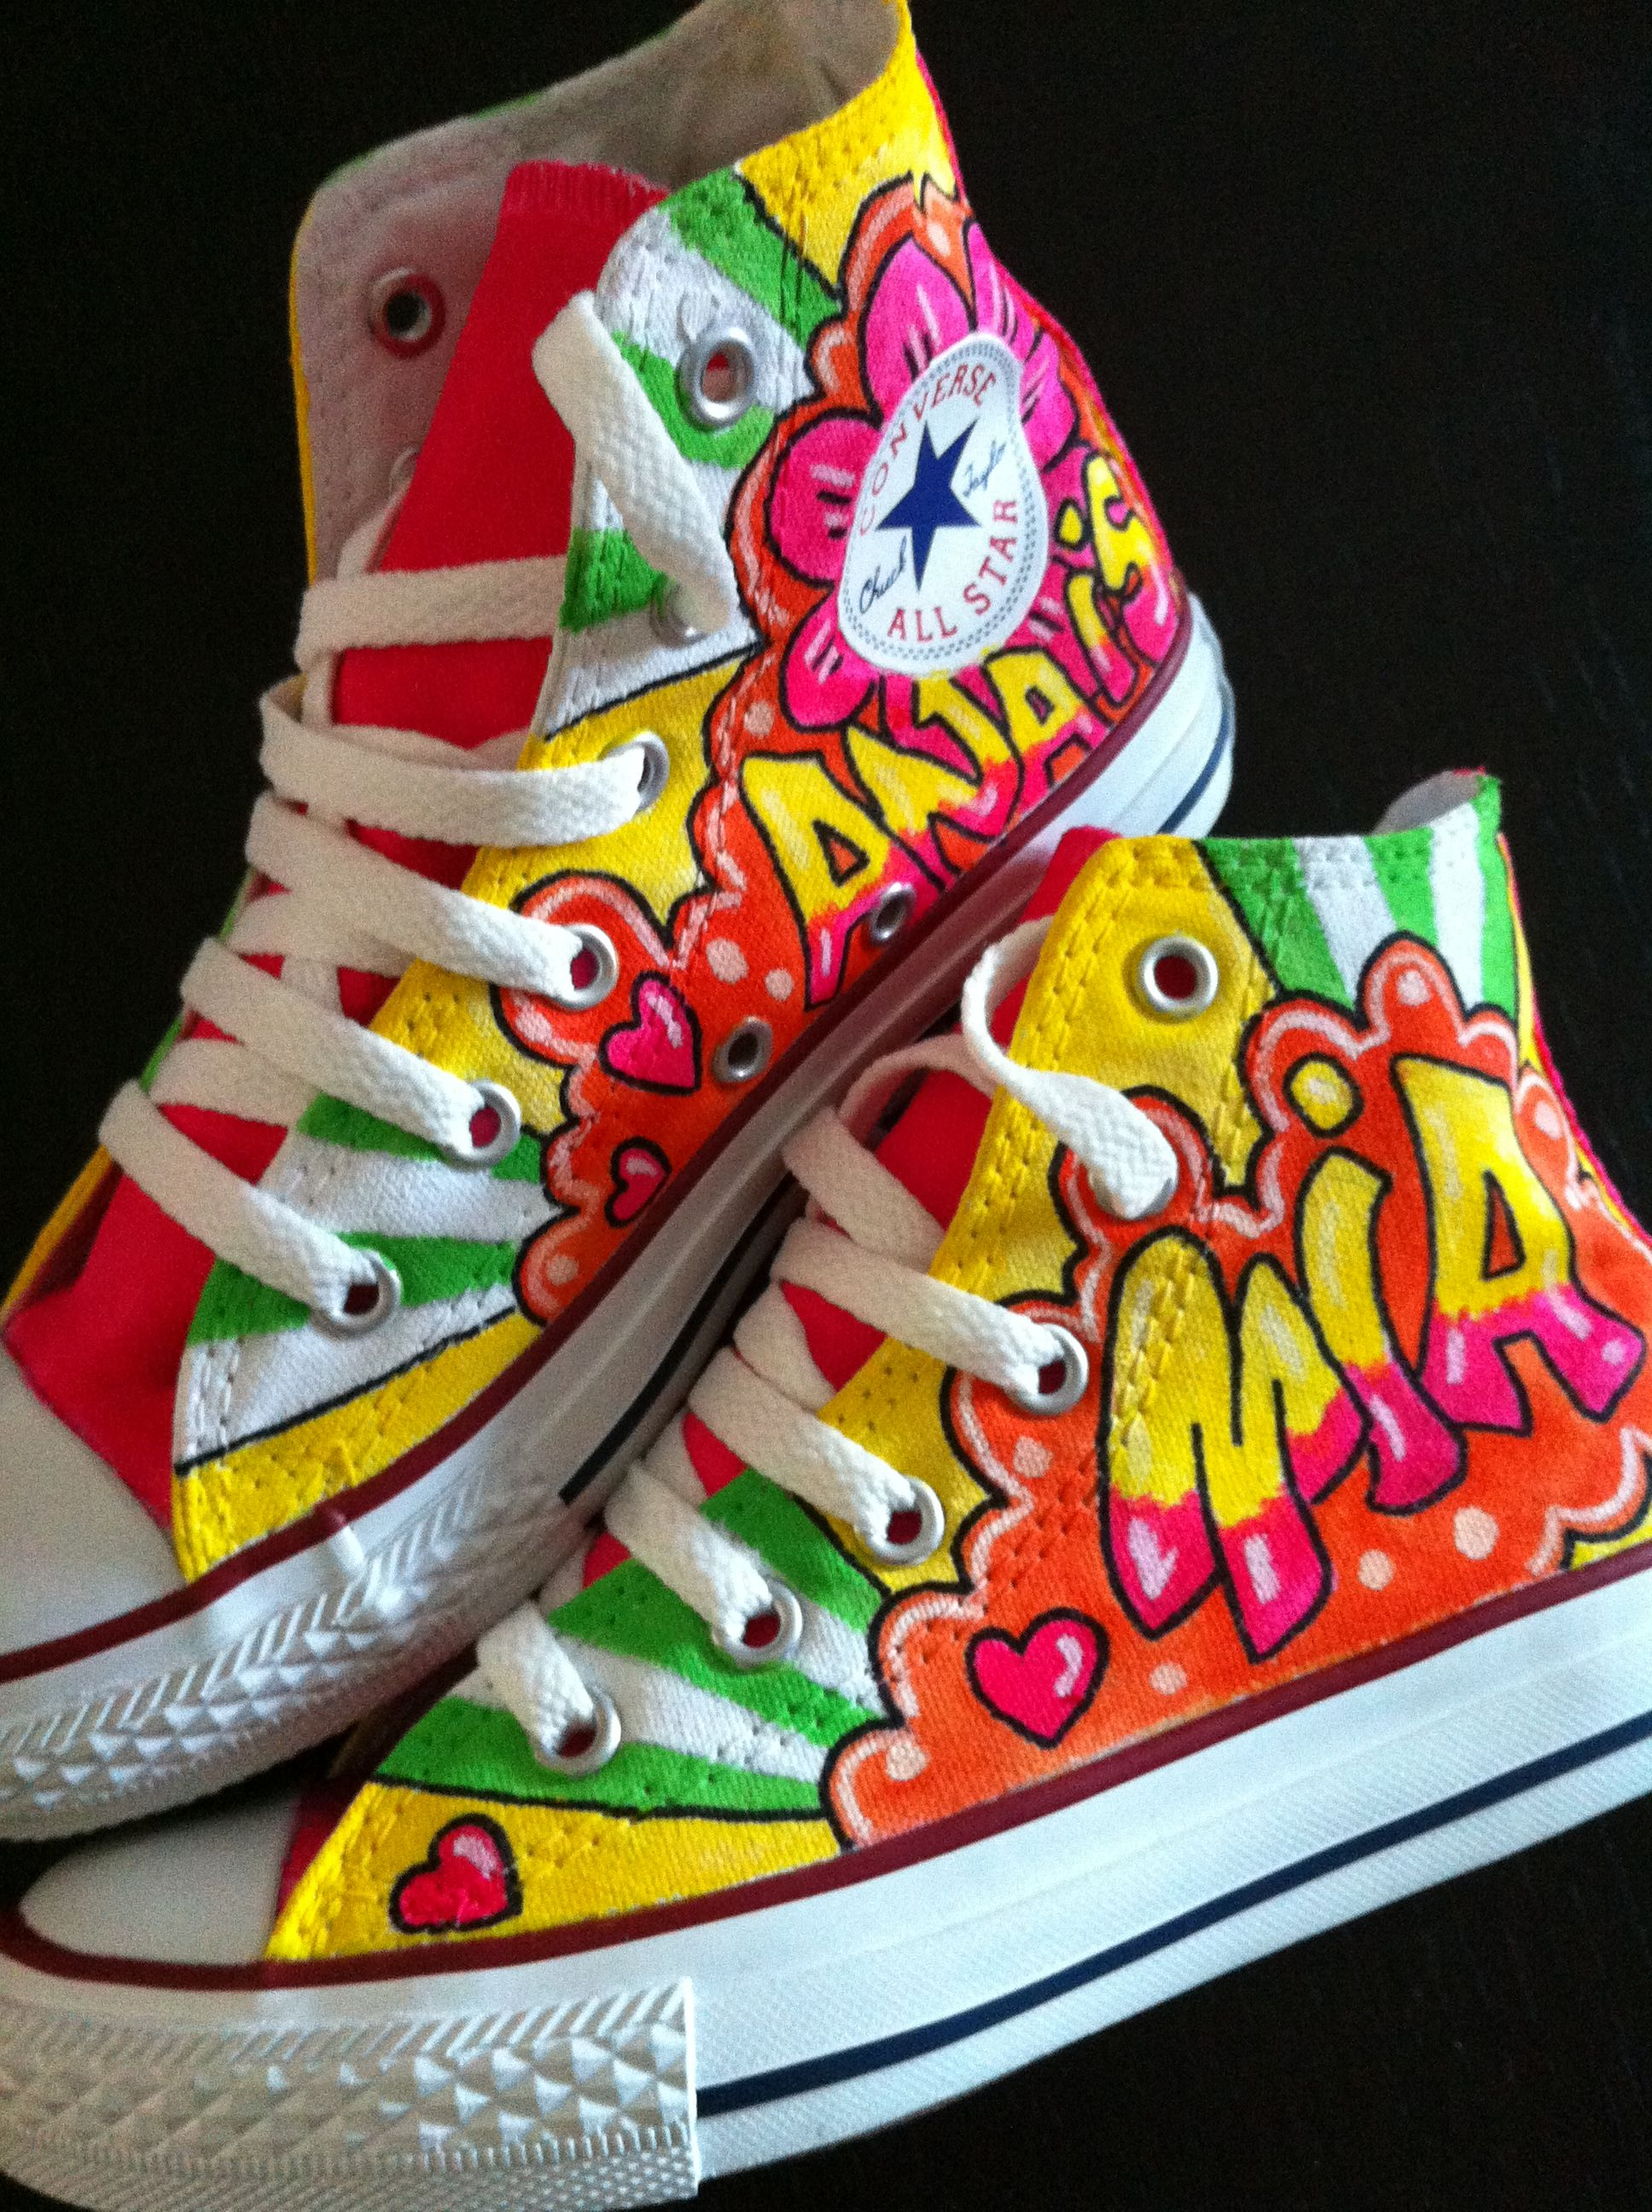 9e8d609505f GIRLY CUSTOM PAINTED GRAFFITI NAME CONVERSE FROM £50 X Converse Design